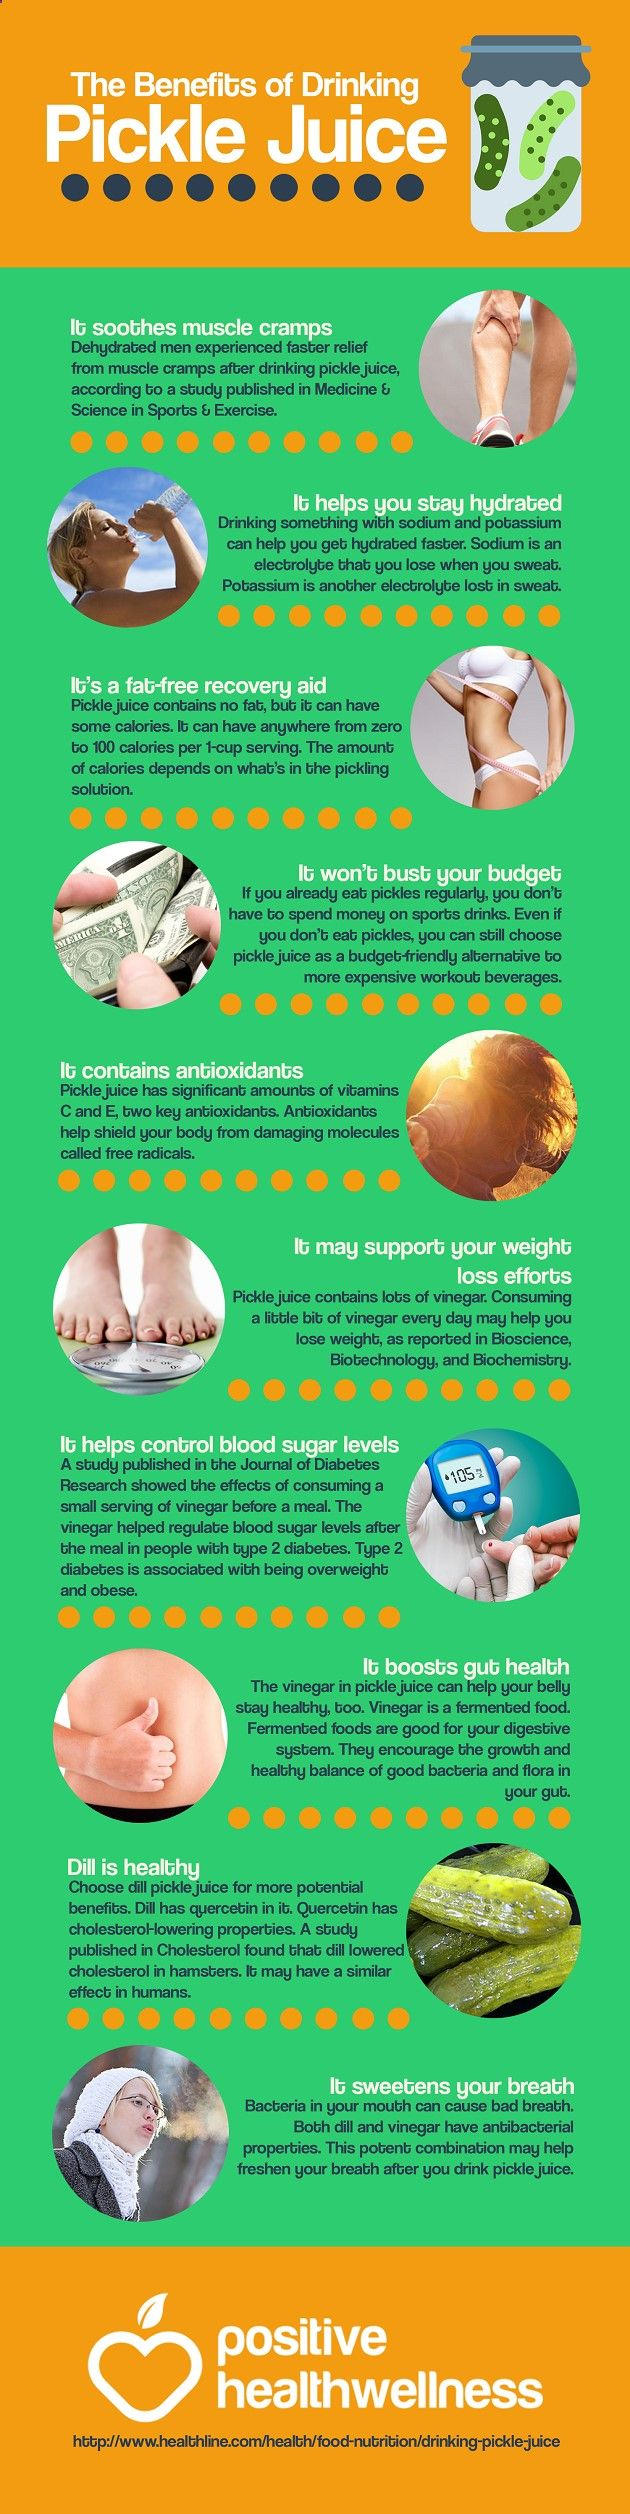 Workouts to get lean and lose weight photo 5